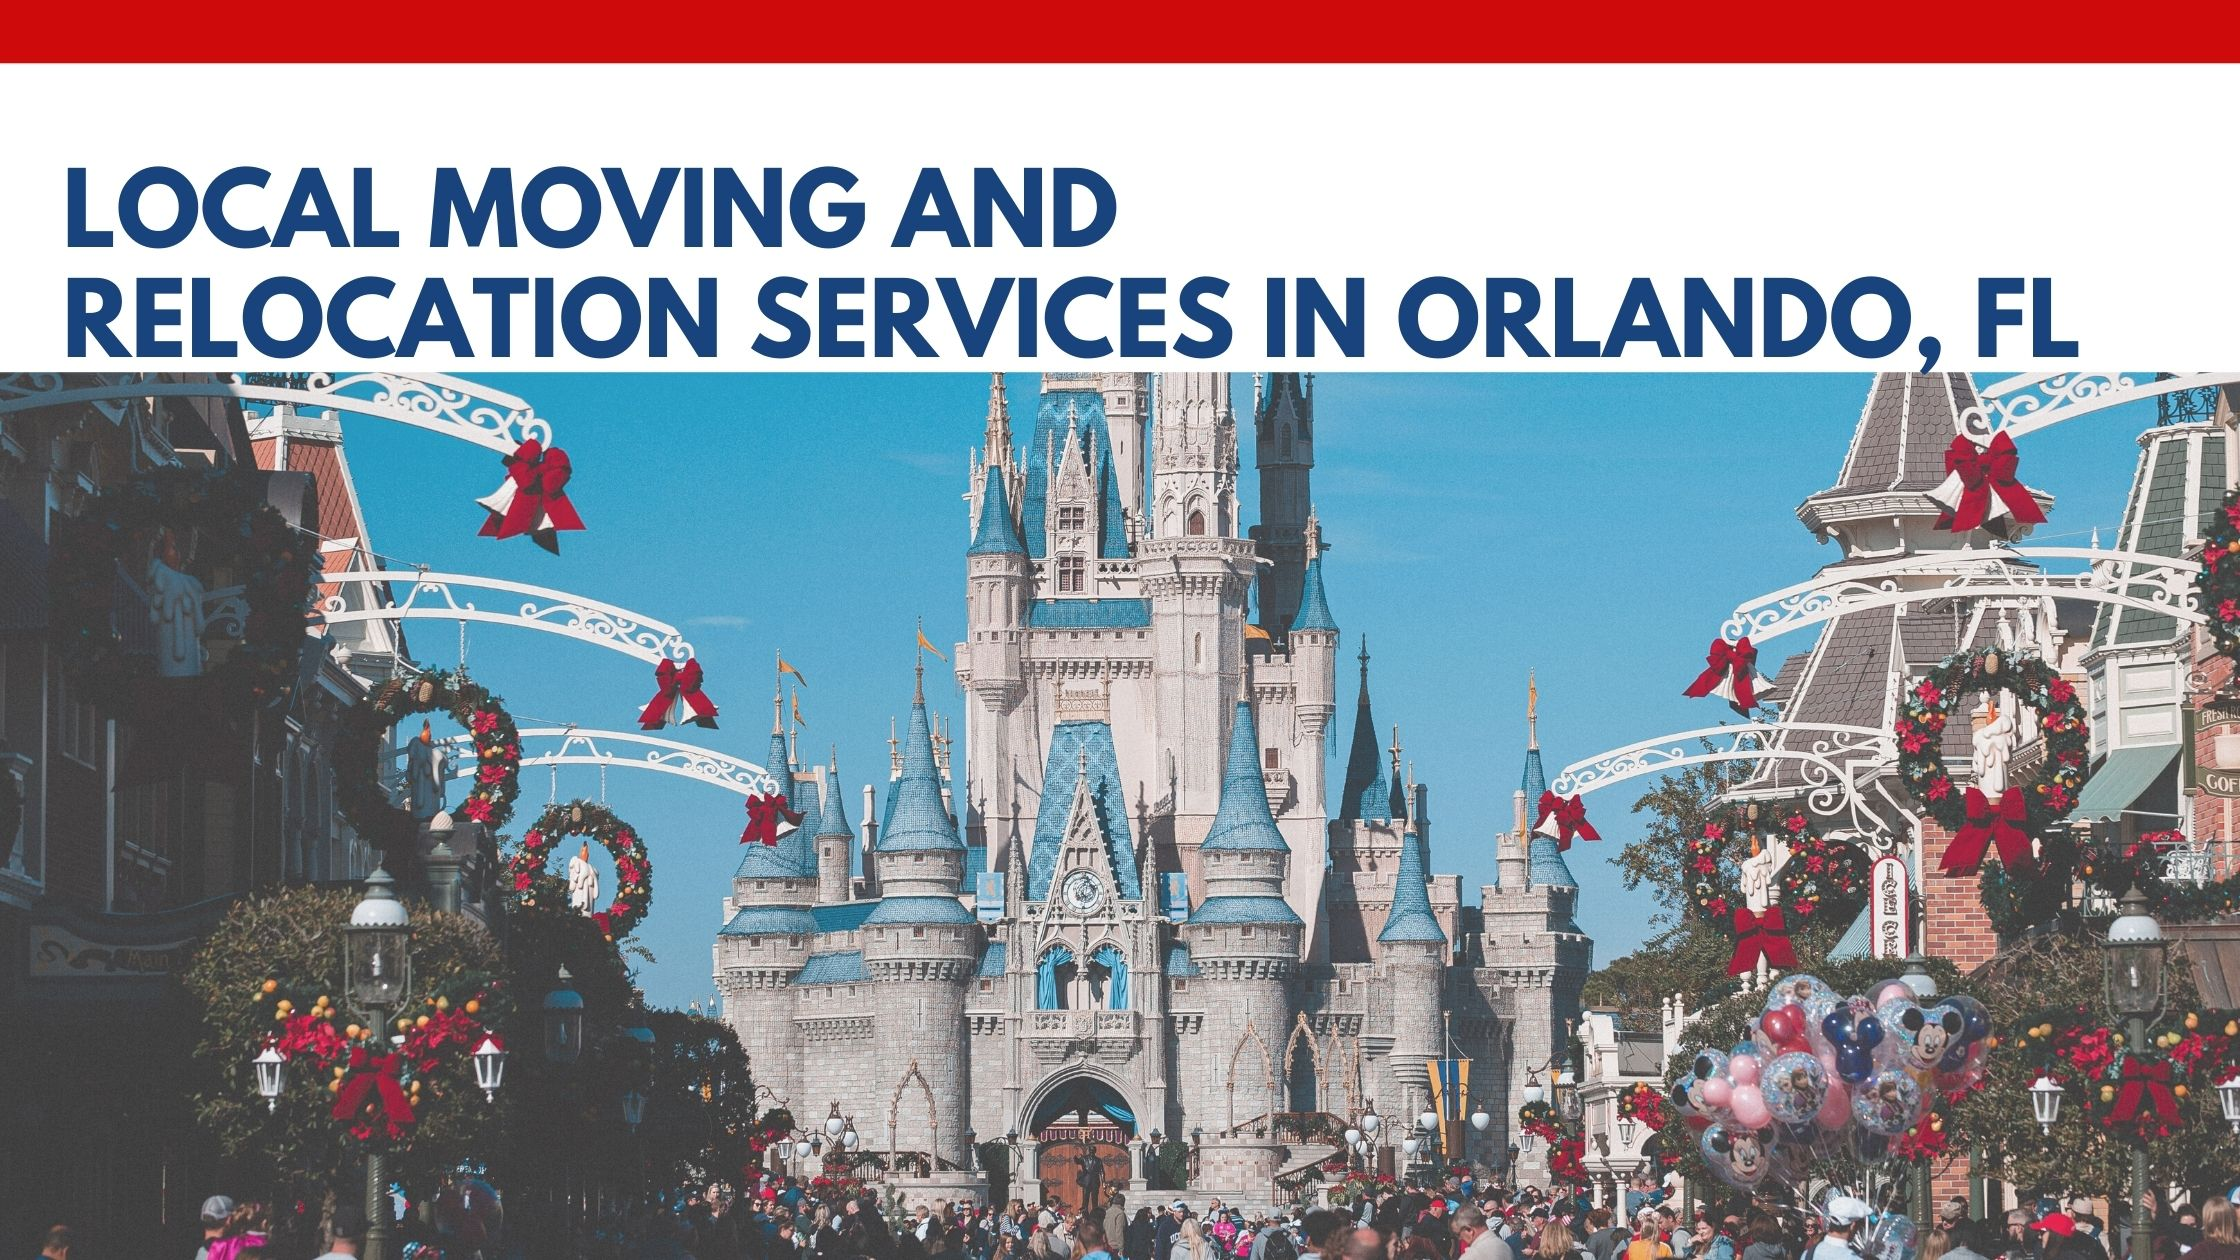 Local Moving and Relocation Services in Orlando, FL